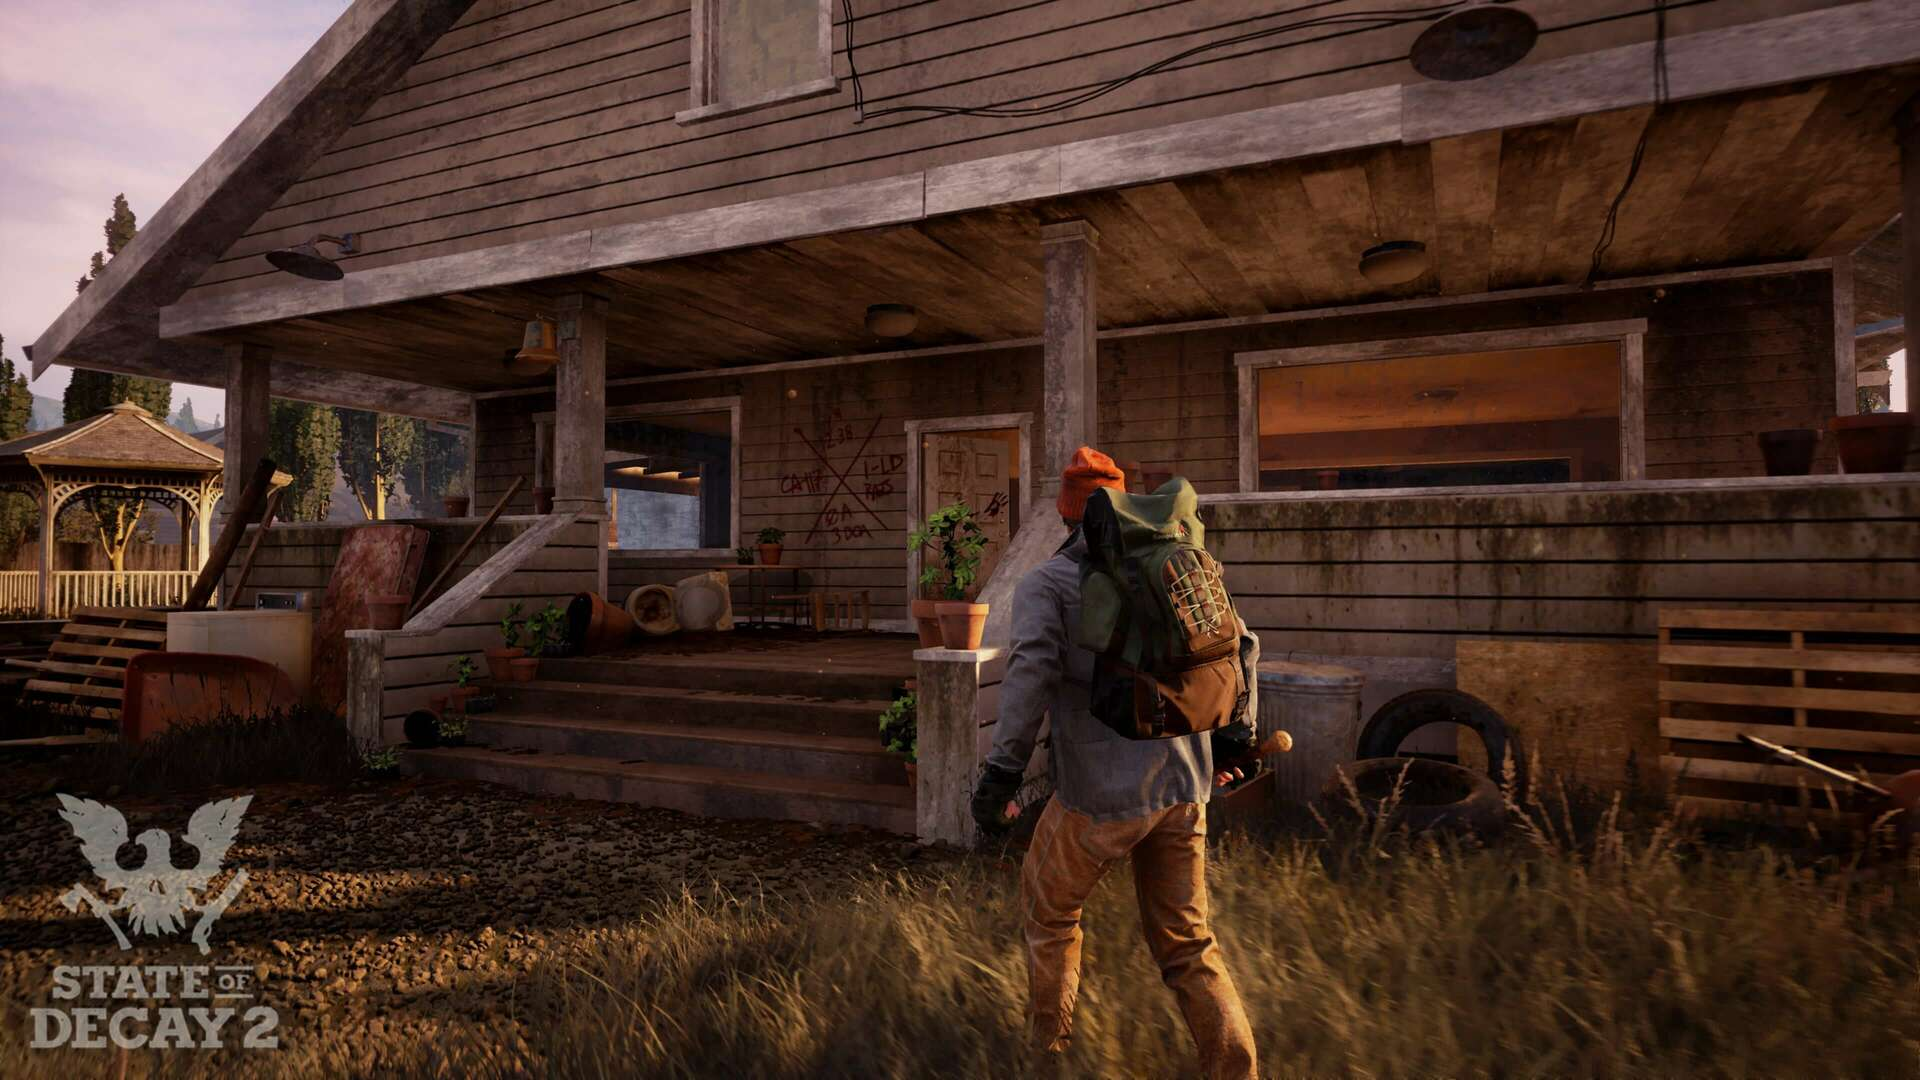 State of Decay 2 Release Date, Price Confirmed